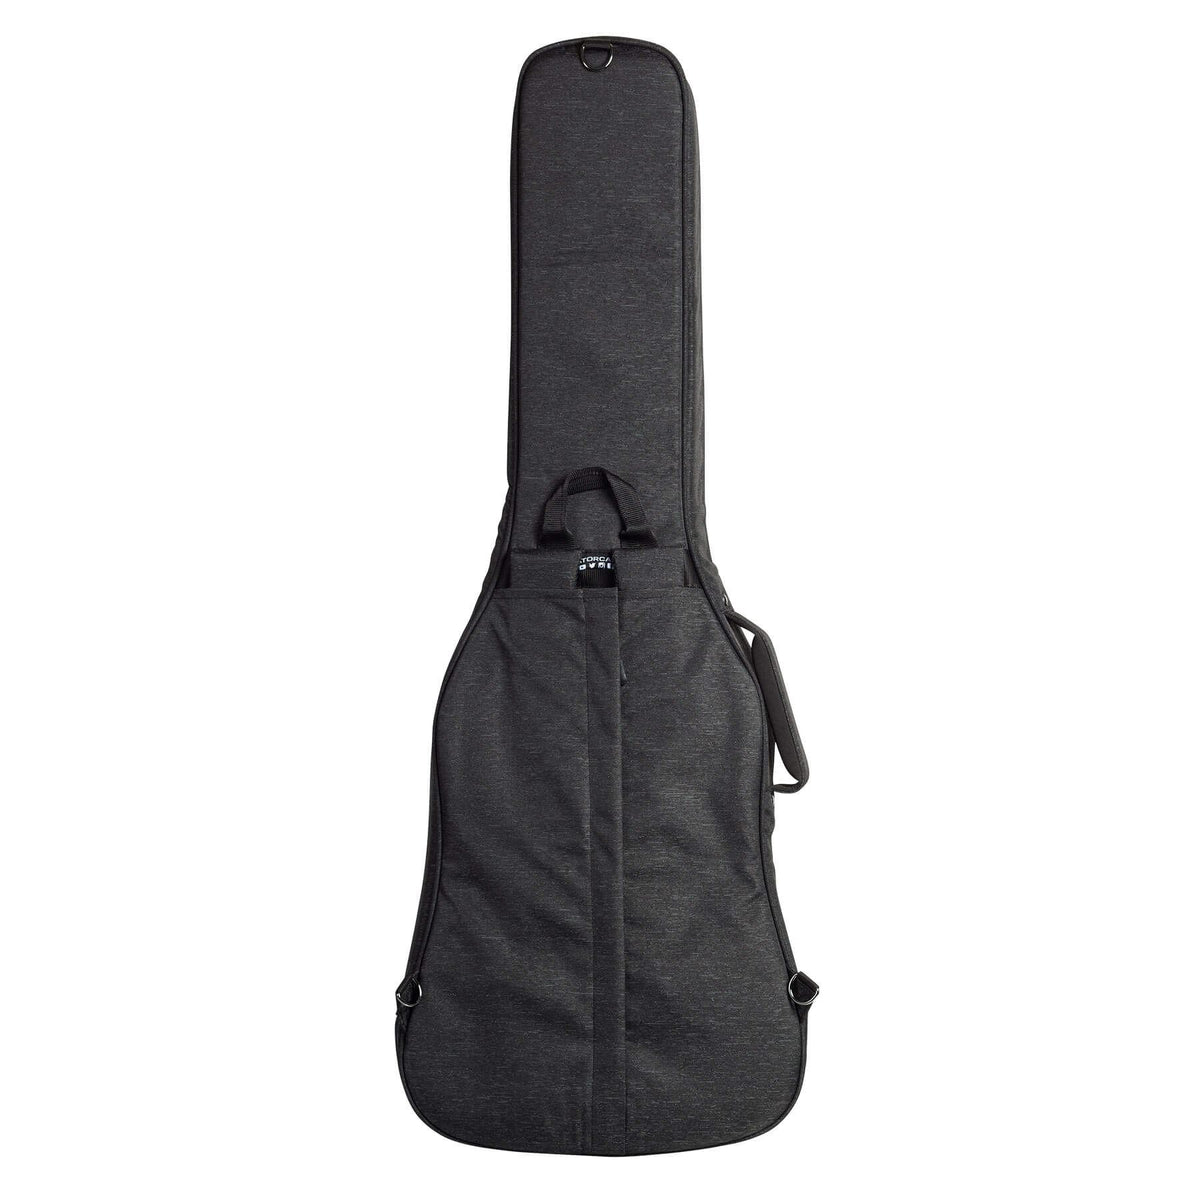 Gator Bass Guitar Case for Fender Standard Fretless Jazz Bass